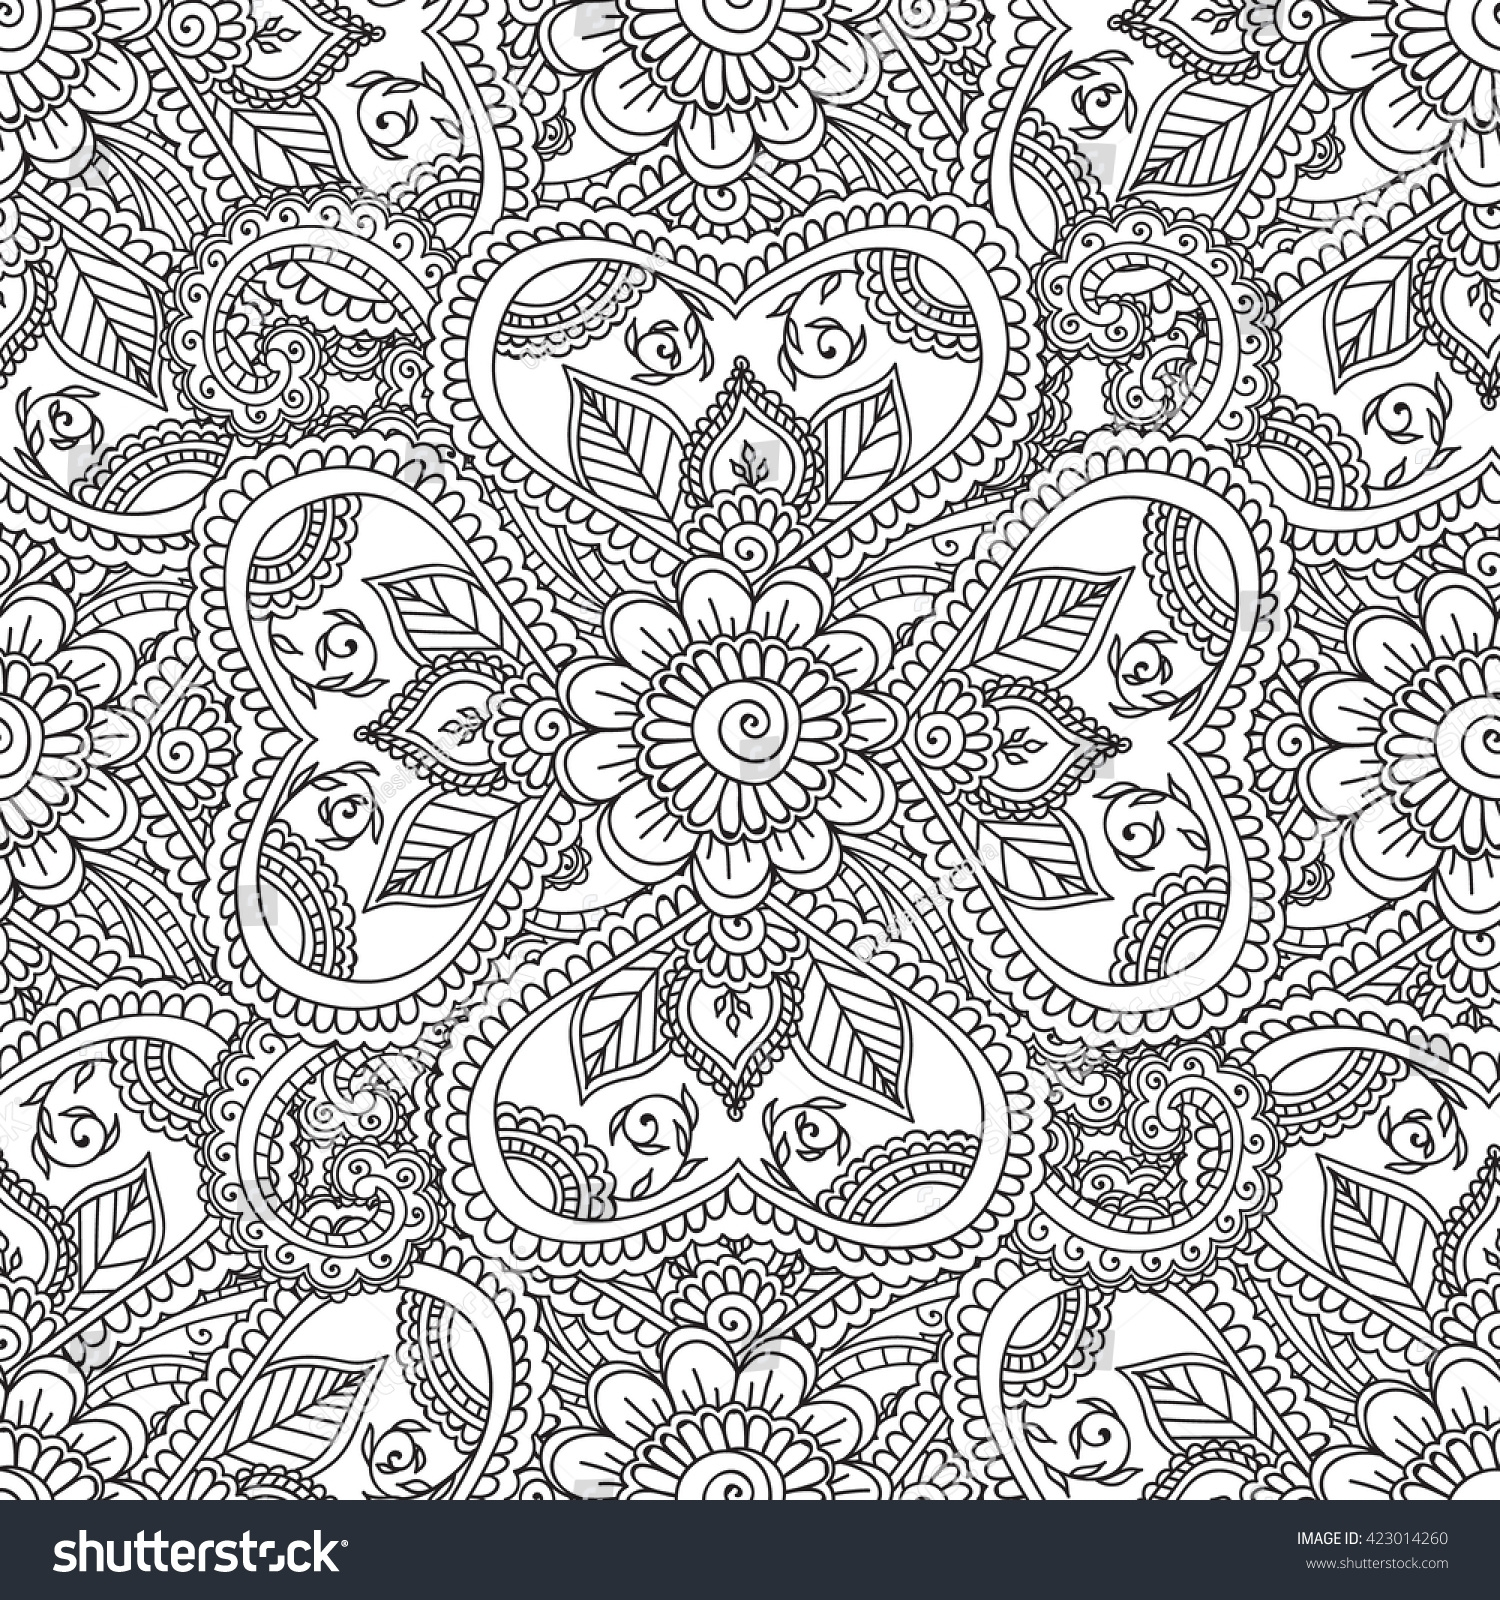 henna coloring pages - stock vector coloring pages for adults seamless pattern henna mehndi doodles abstract floral paisley design